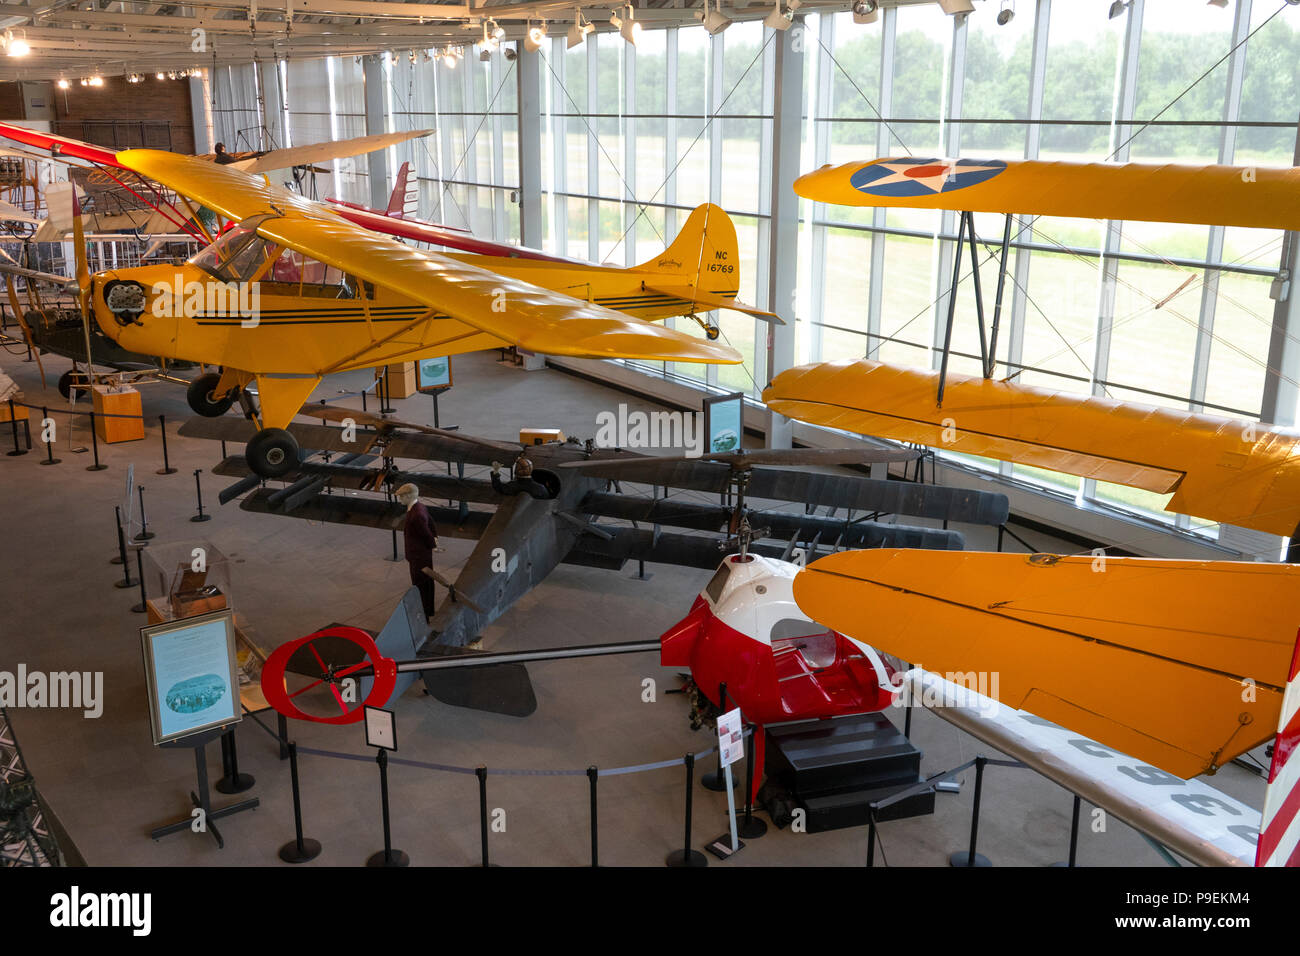 USA Maryland MD College Park Aviation Museum the oldest continuously used airport in the world civil aviation - Stock Image